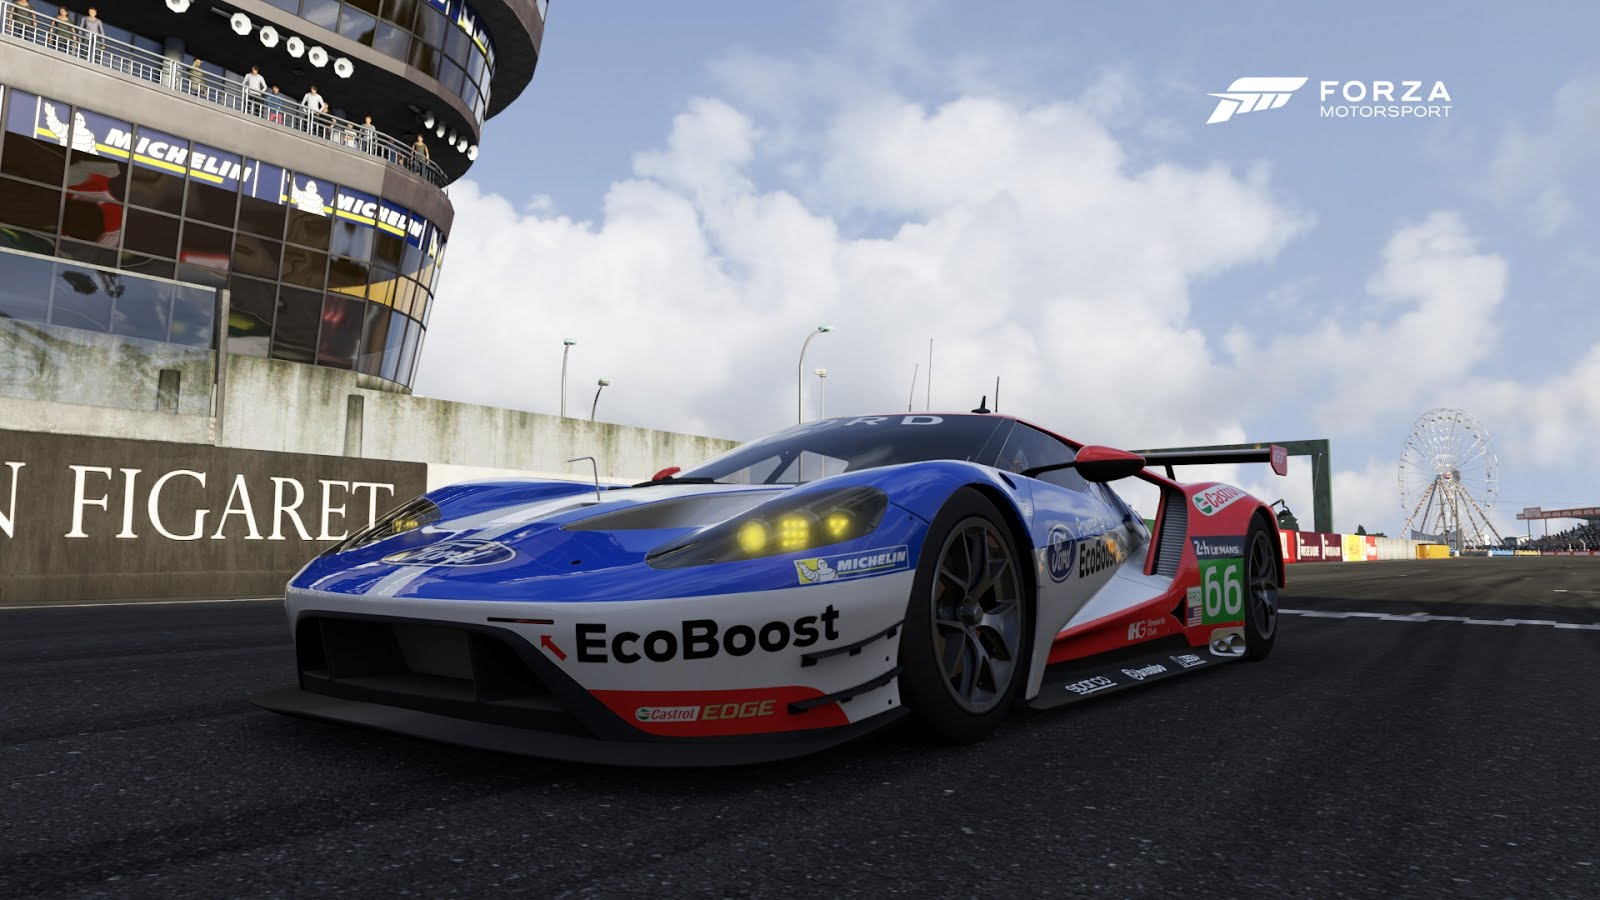 leopaul 39 s blog forza motorsport 6 ford 39 s return to le mans. Black Bedroom Furniture Sets. Home Design Ideas